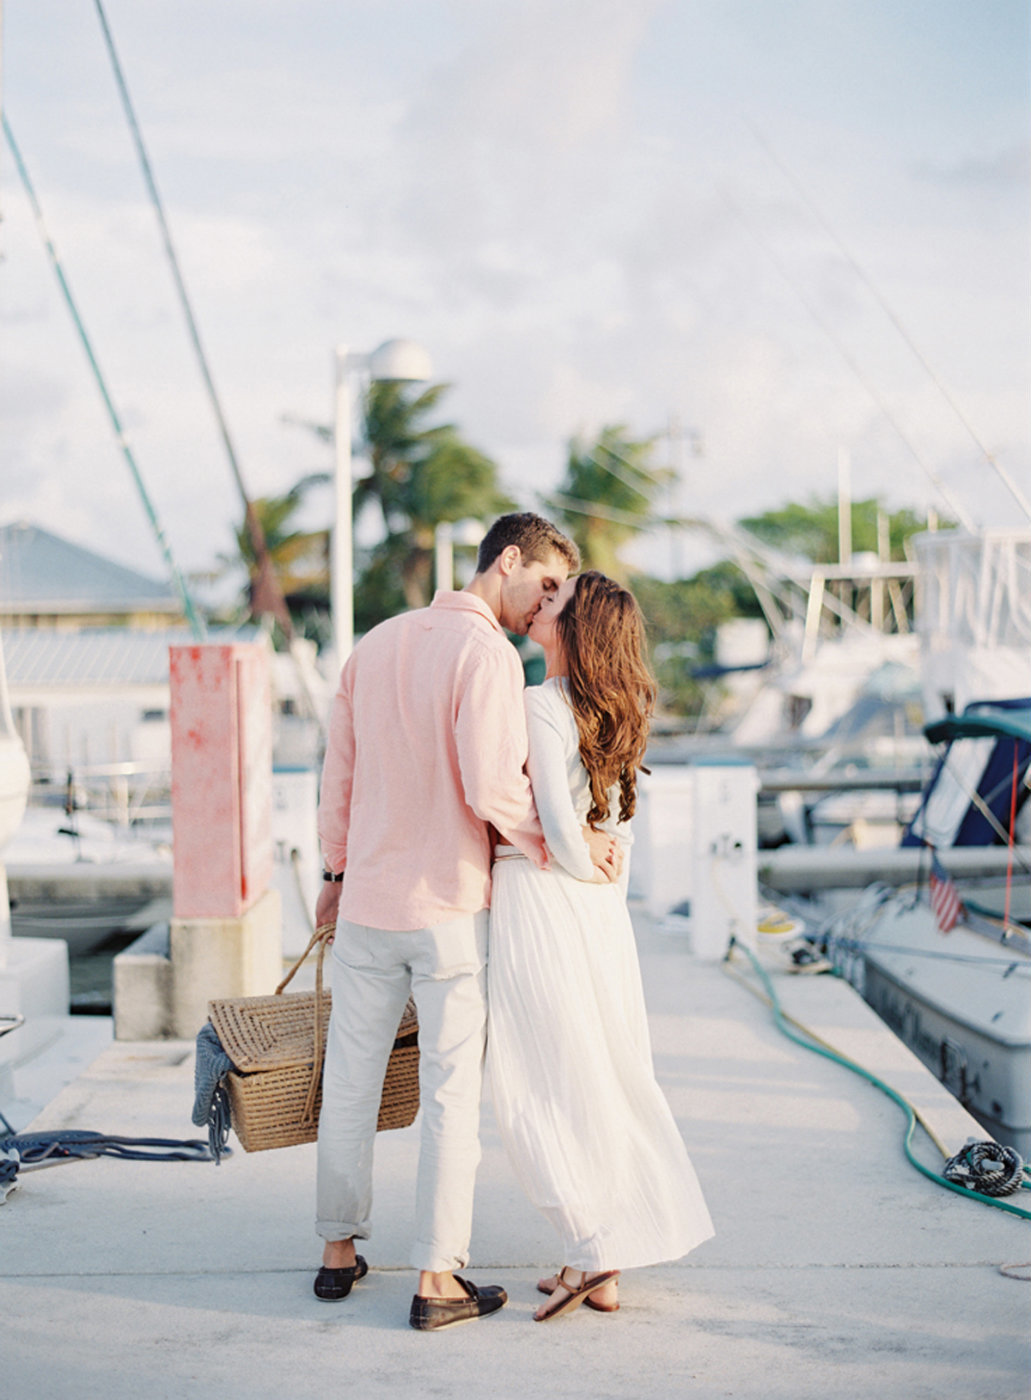 kayla_jon_vizcaya_sailboat_engagement_melanie_gabrielle_photography_631